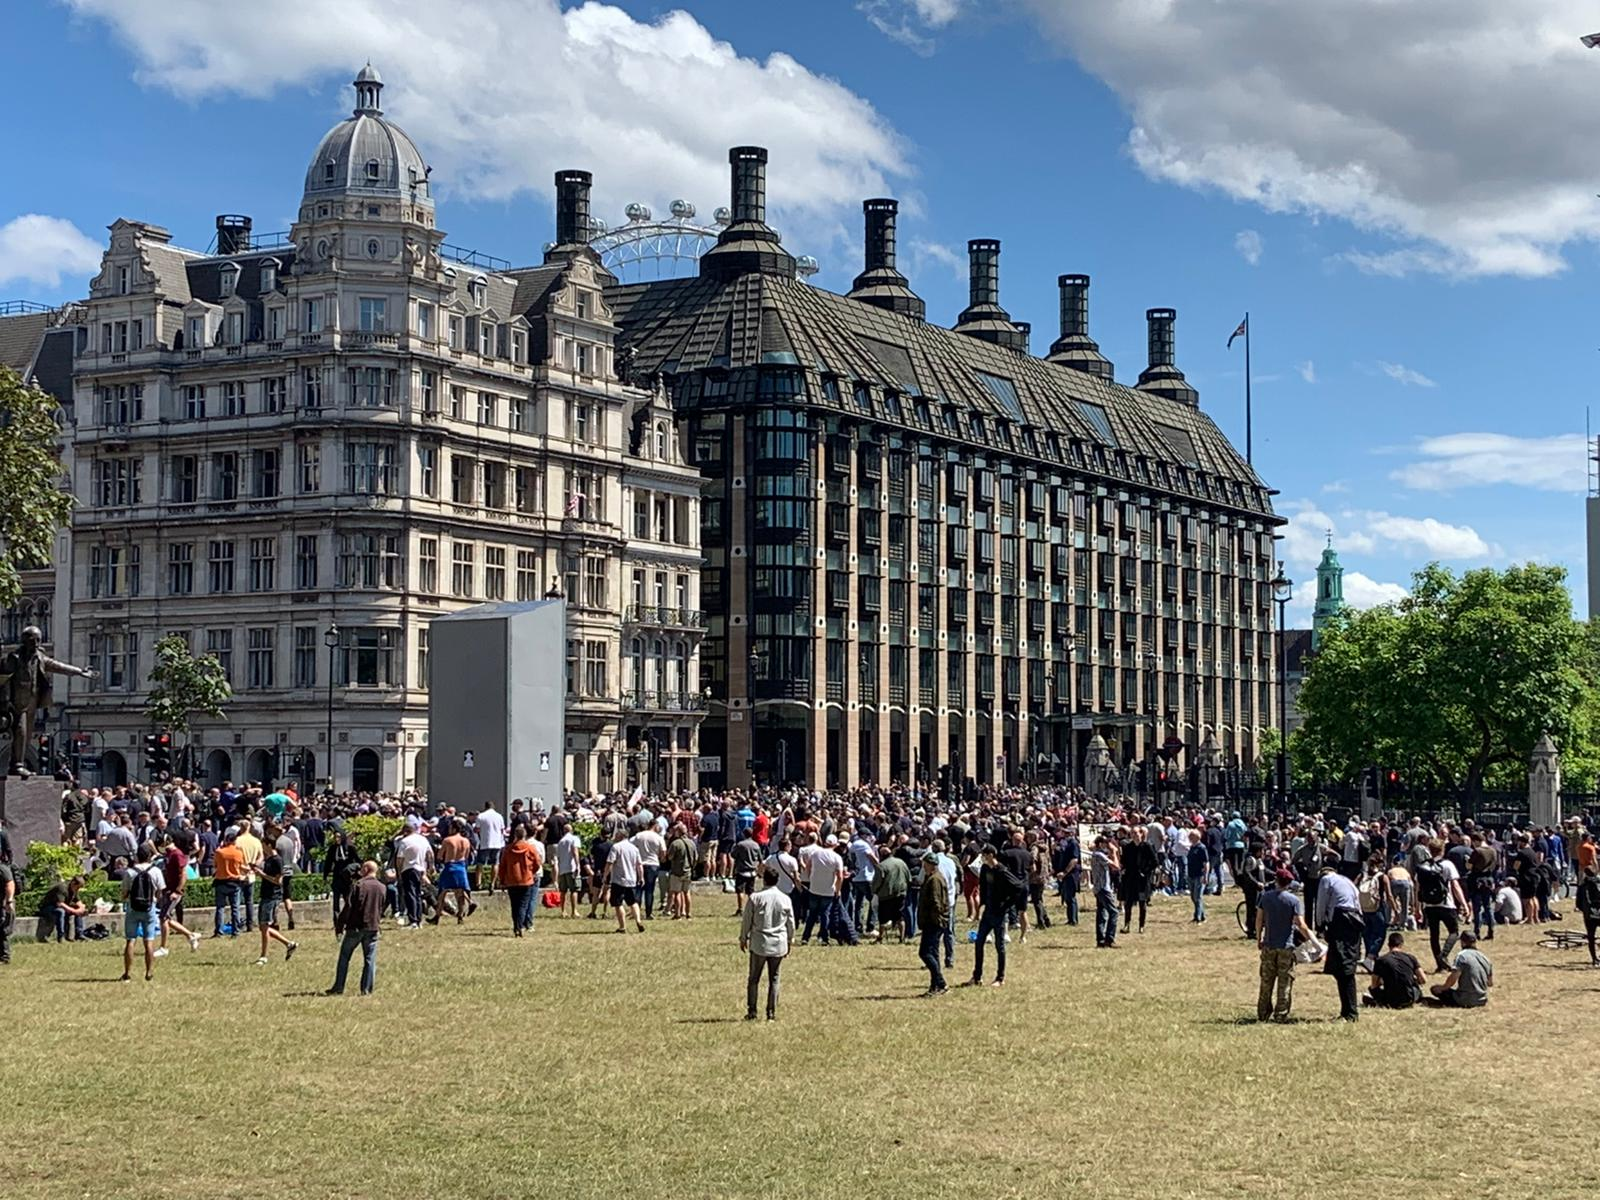 Protesters gathered in Parliament Square, London, on Saturday, where statues including one of Winston Churchill are boarded up.